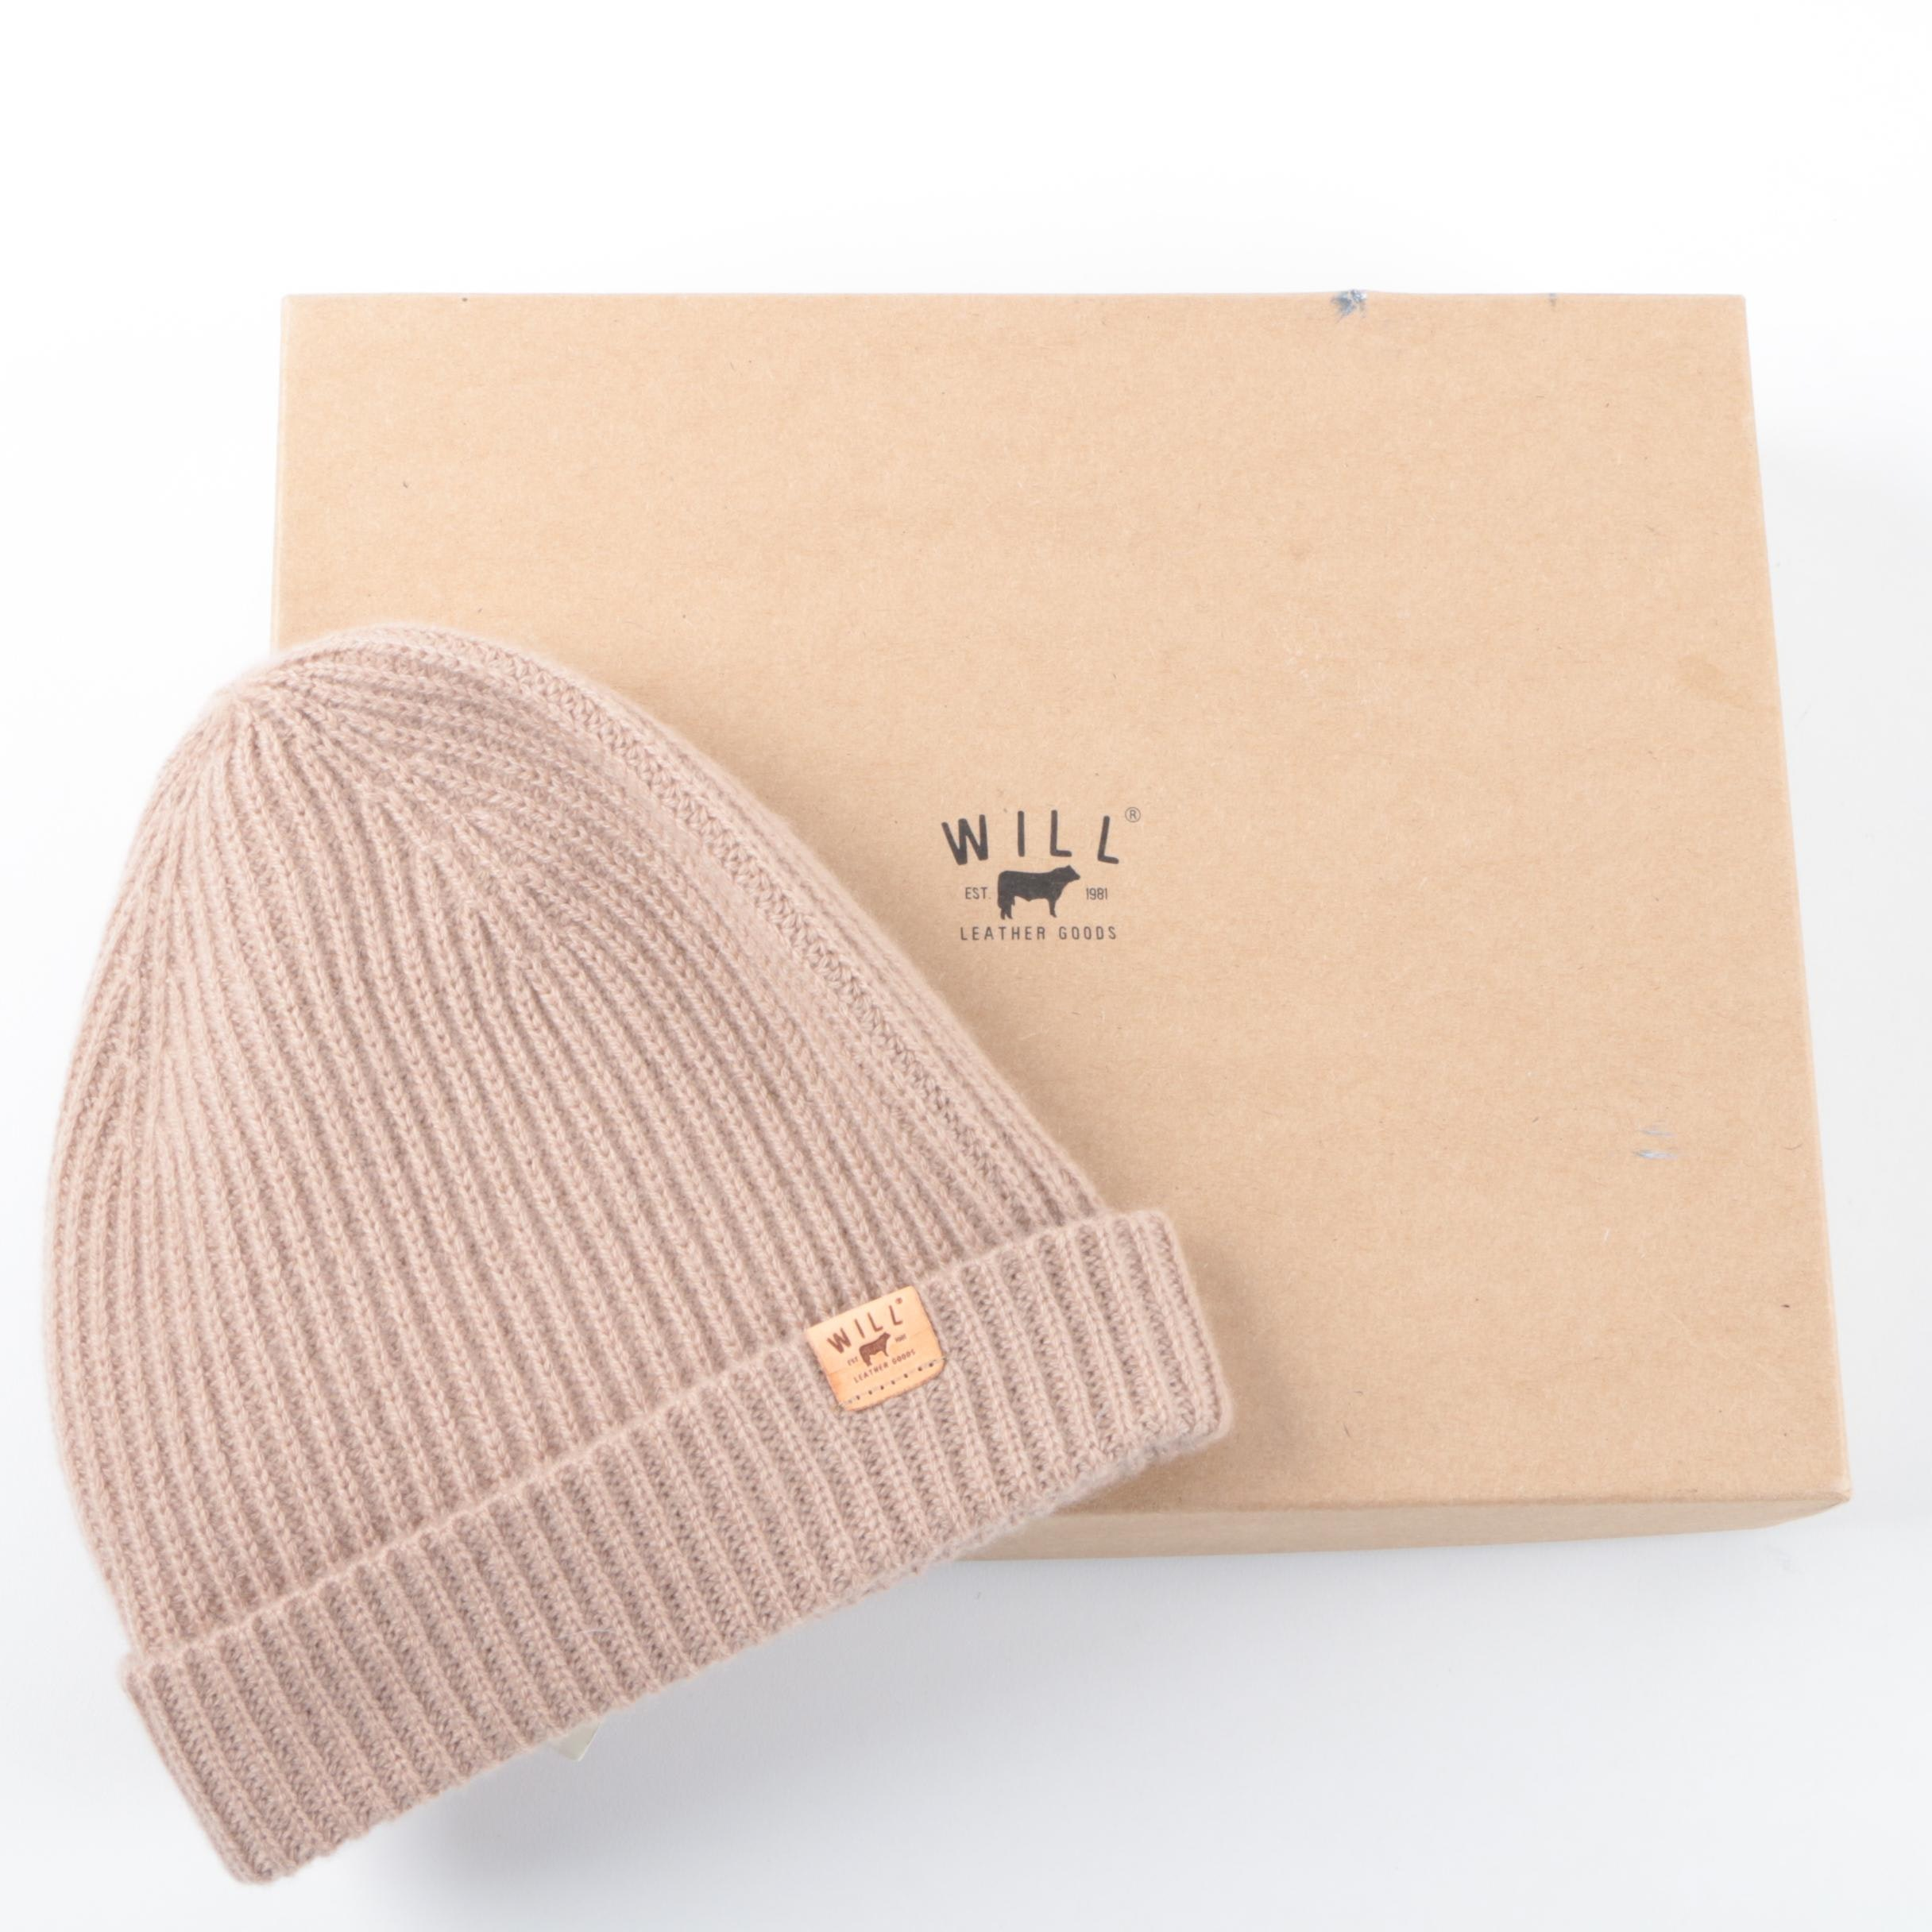 Will Leather Goods Tan Cashmere Knit Watchman's Cap